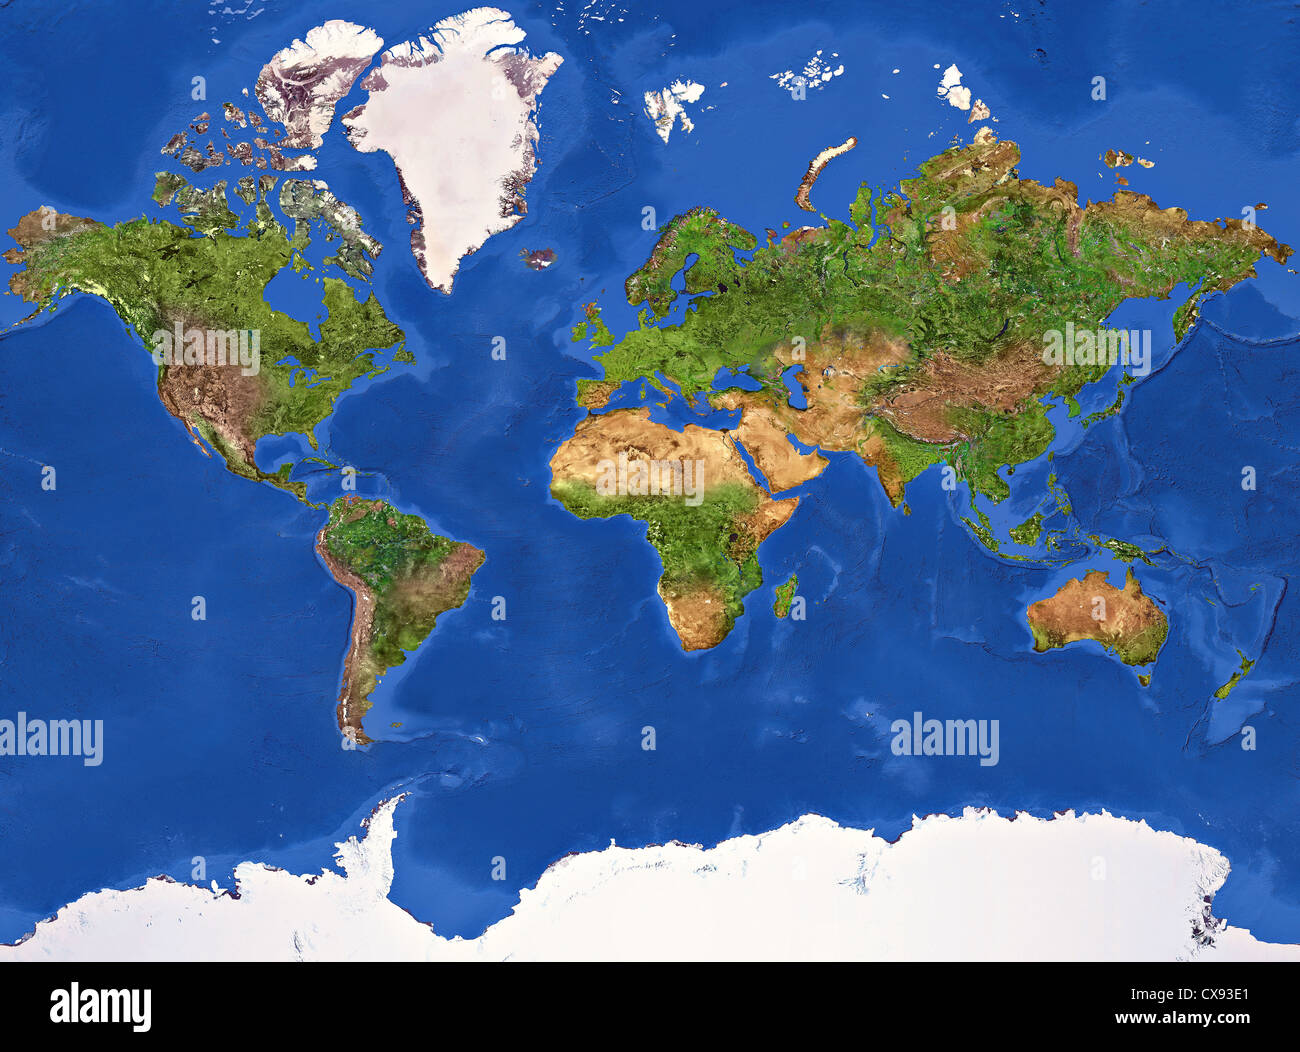 High resolution of the planet earth painted texture stock photo high resolution of the planet earth painted texture gumiabroncs Image collections